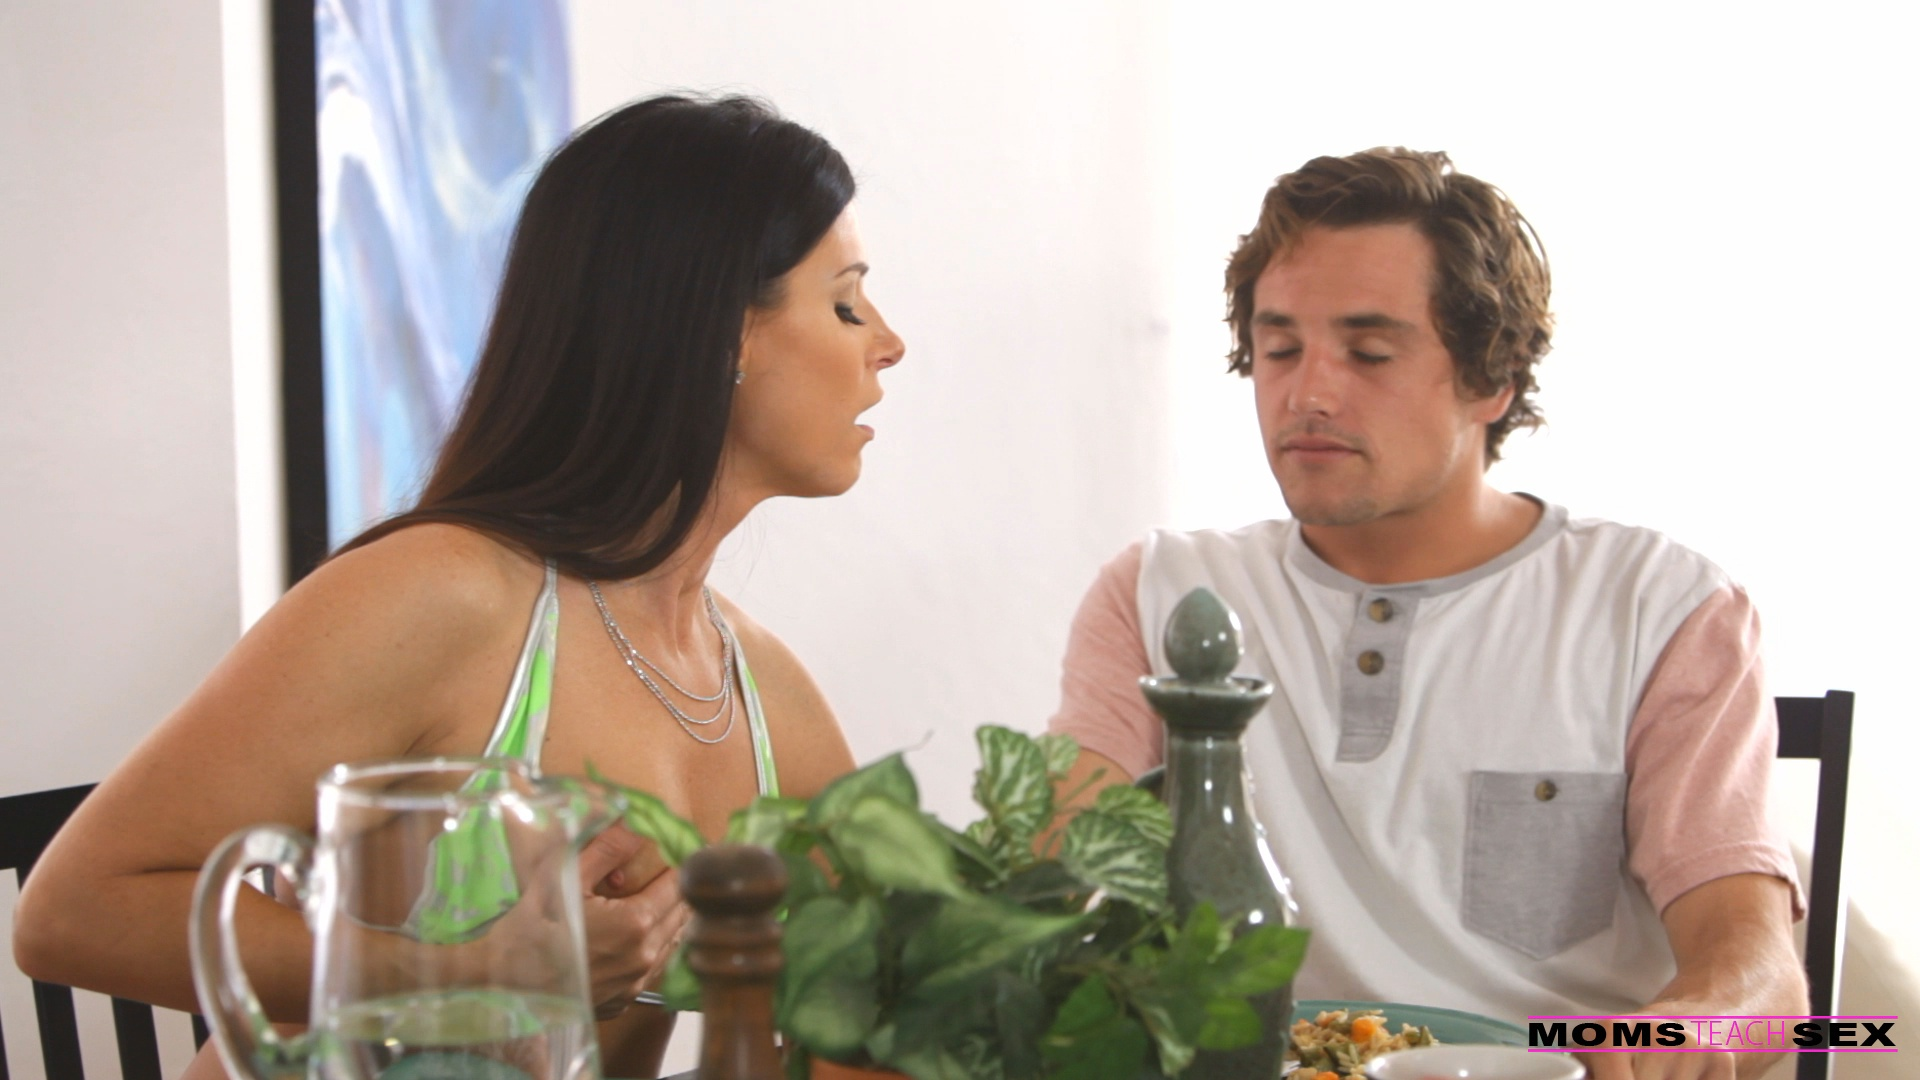 After Dad Leaves - S2:E4 featuring India Summer and Tysen Rich. (Video & Screenshots)